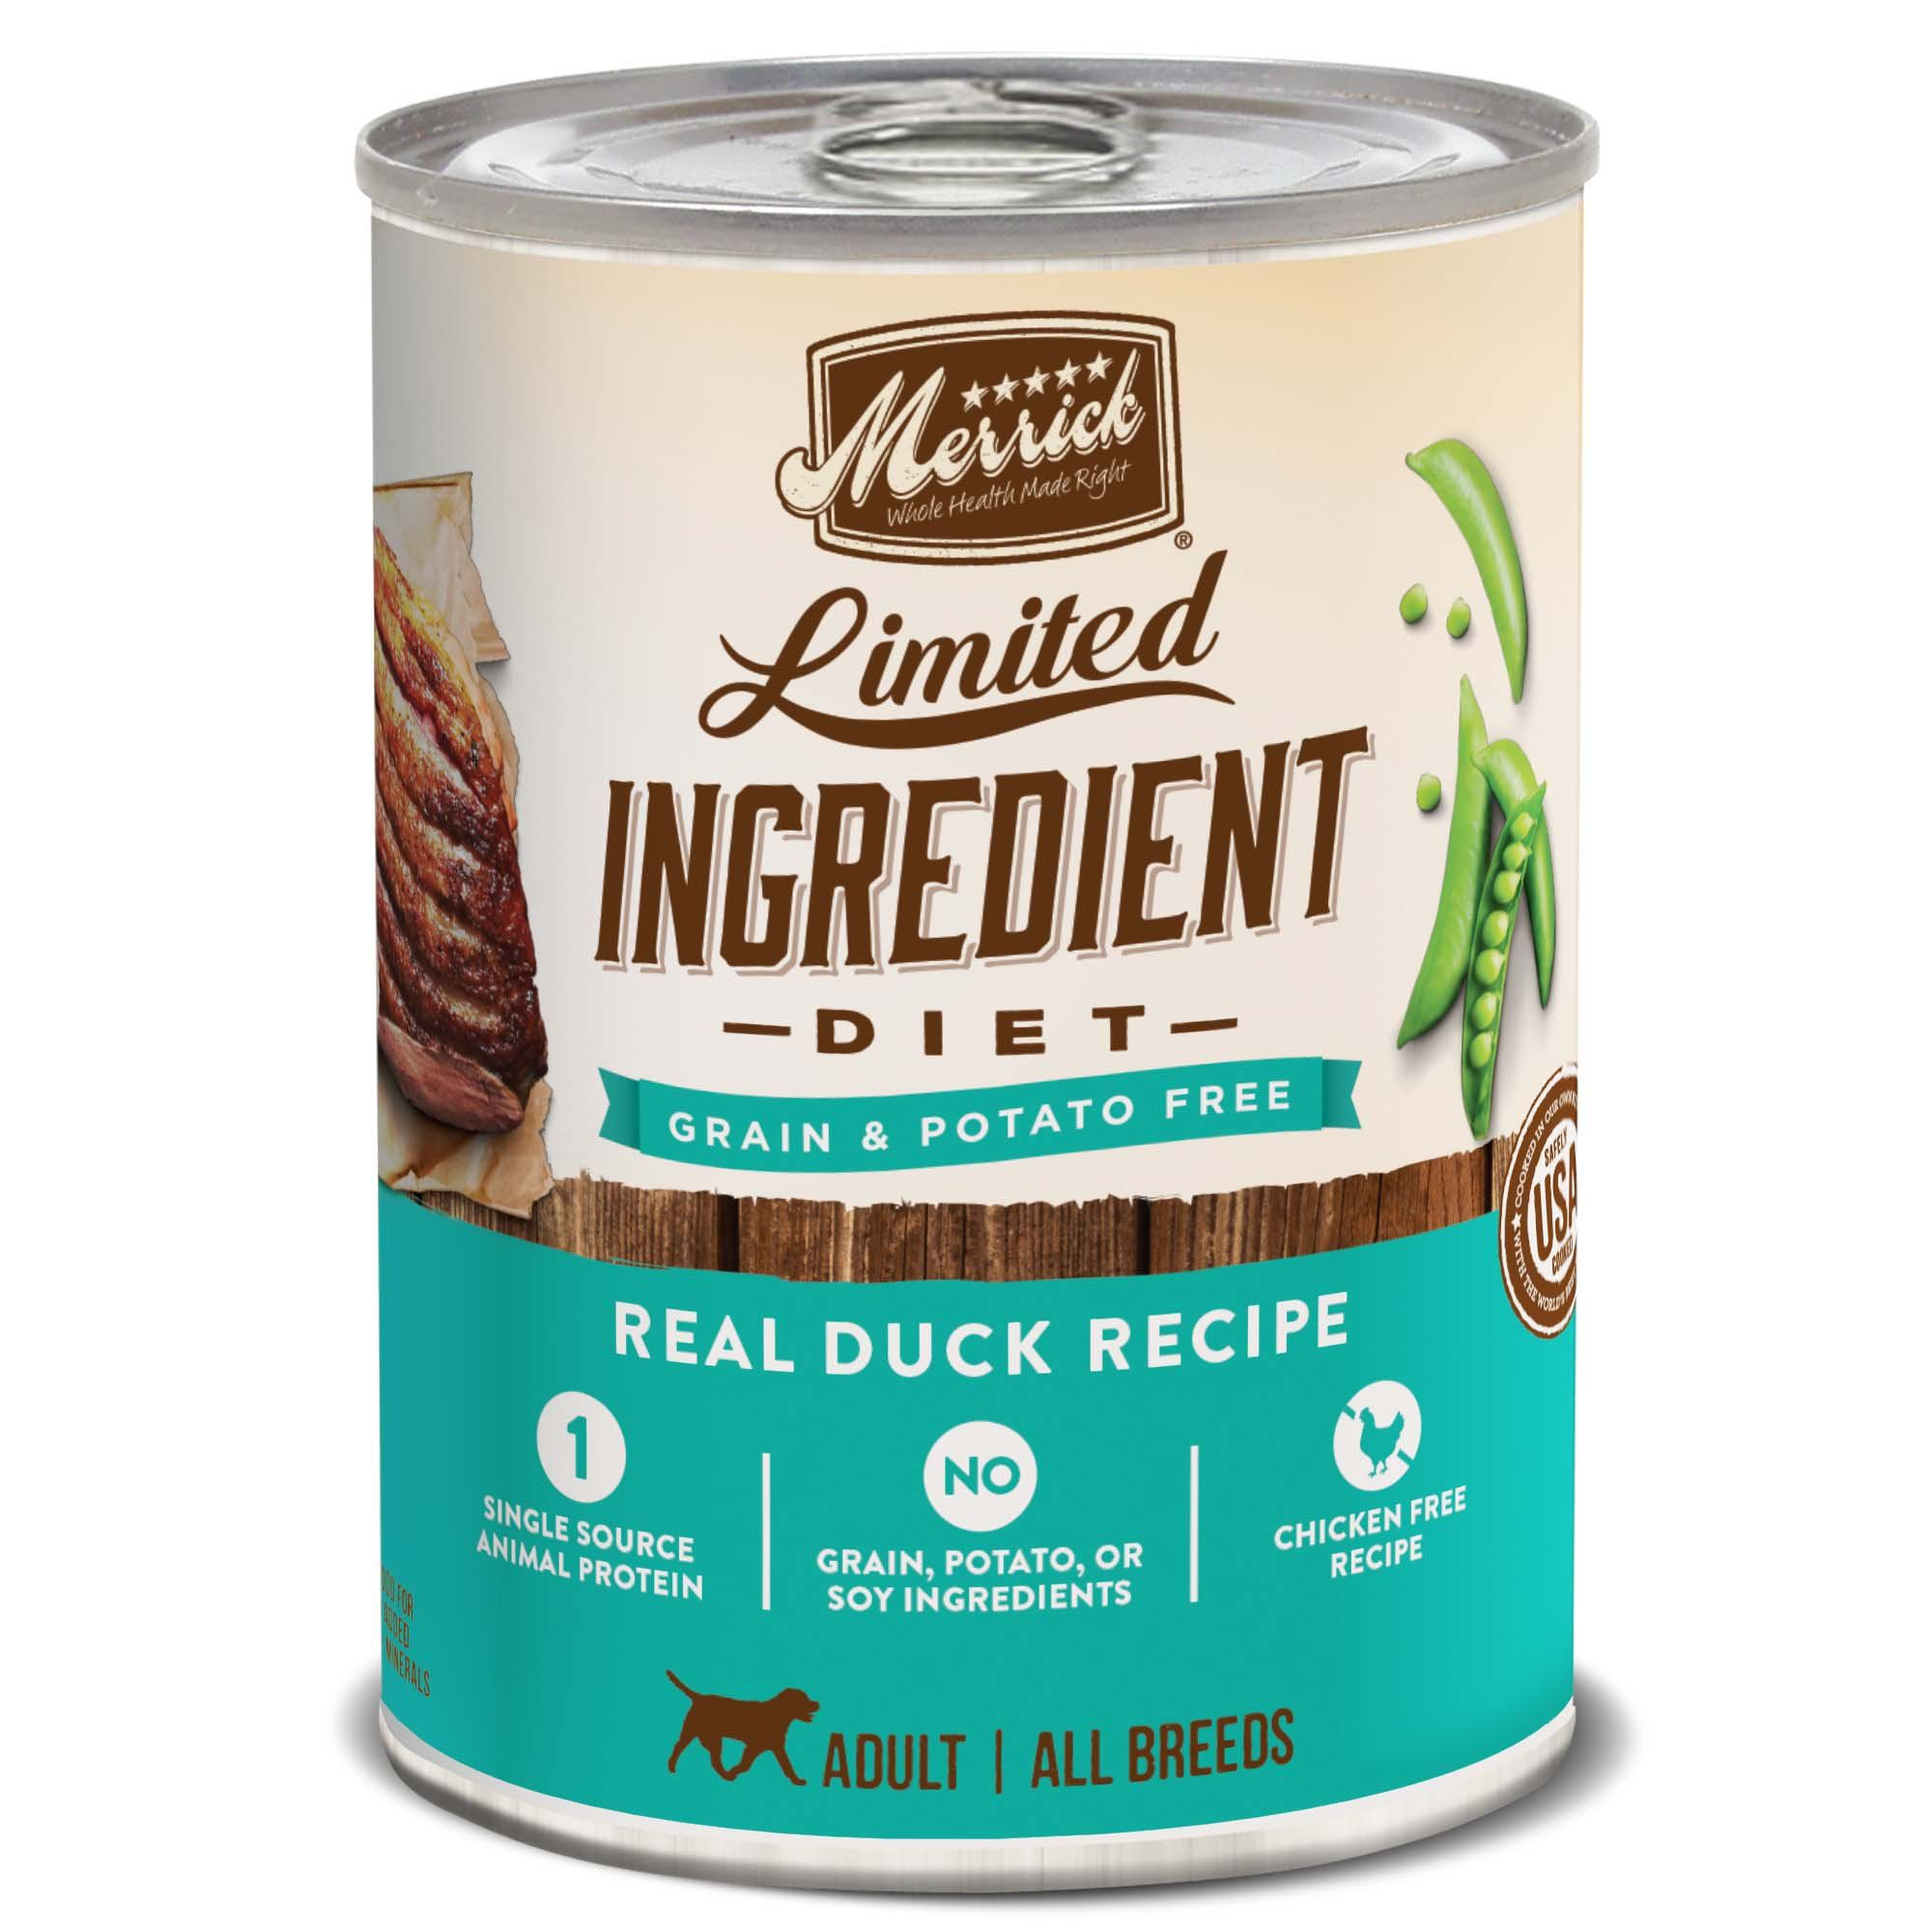 Merrick Limited Ingredient Diet Grain Free Real Duck Canned Dog